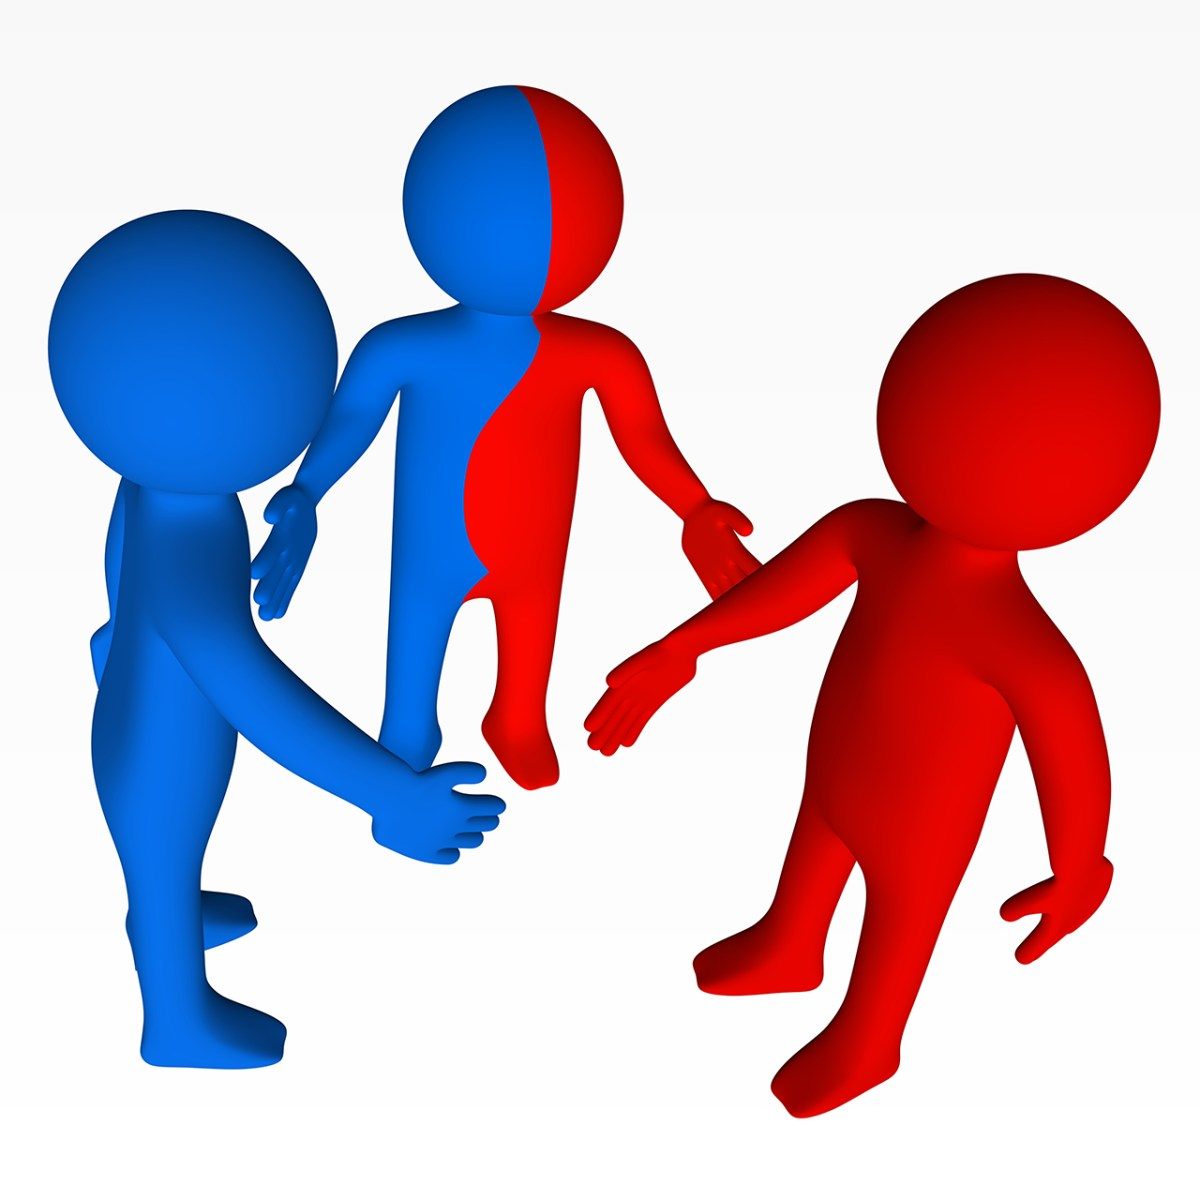 illustration of three individuals: one red, one blue, one red and blue